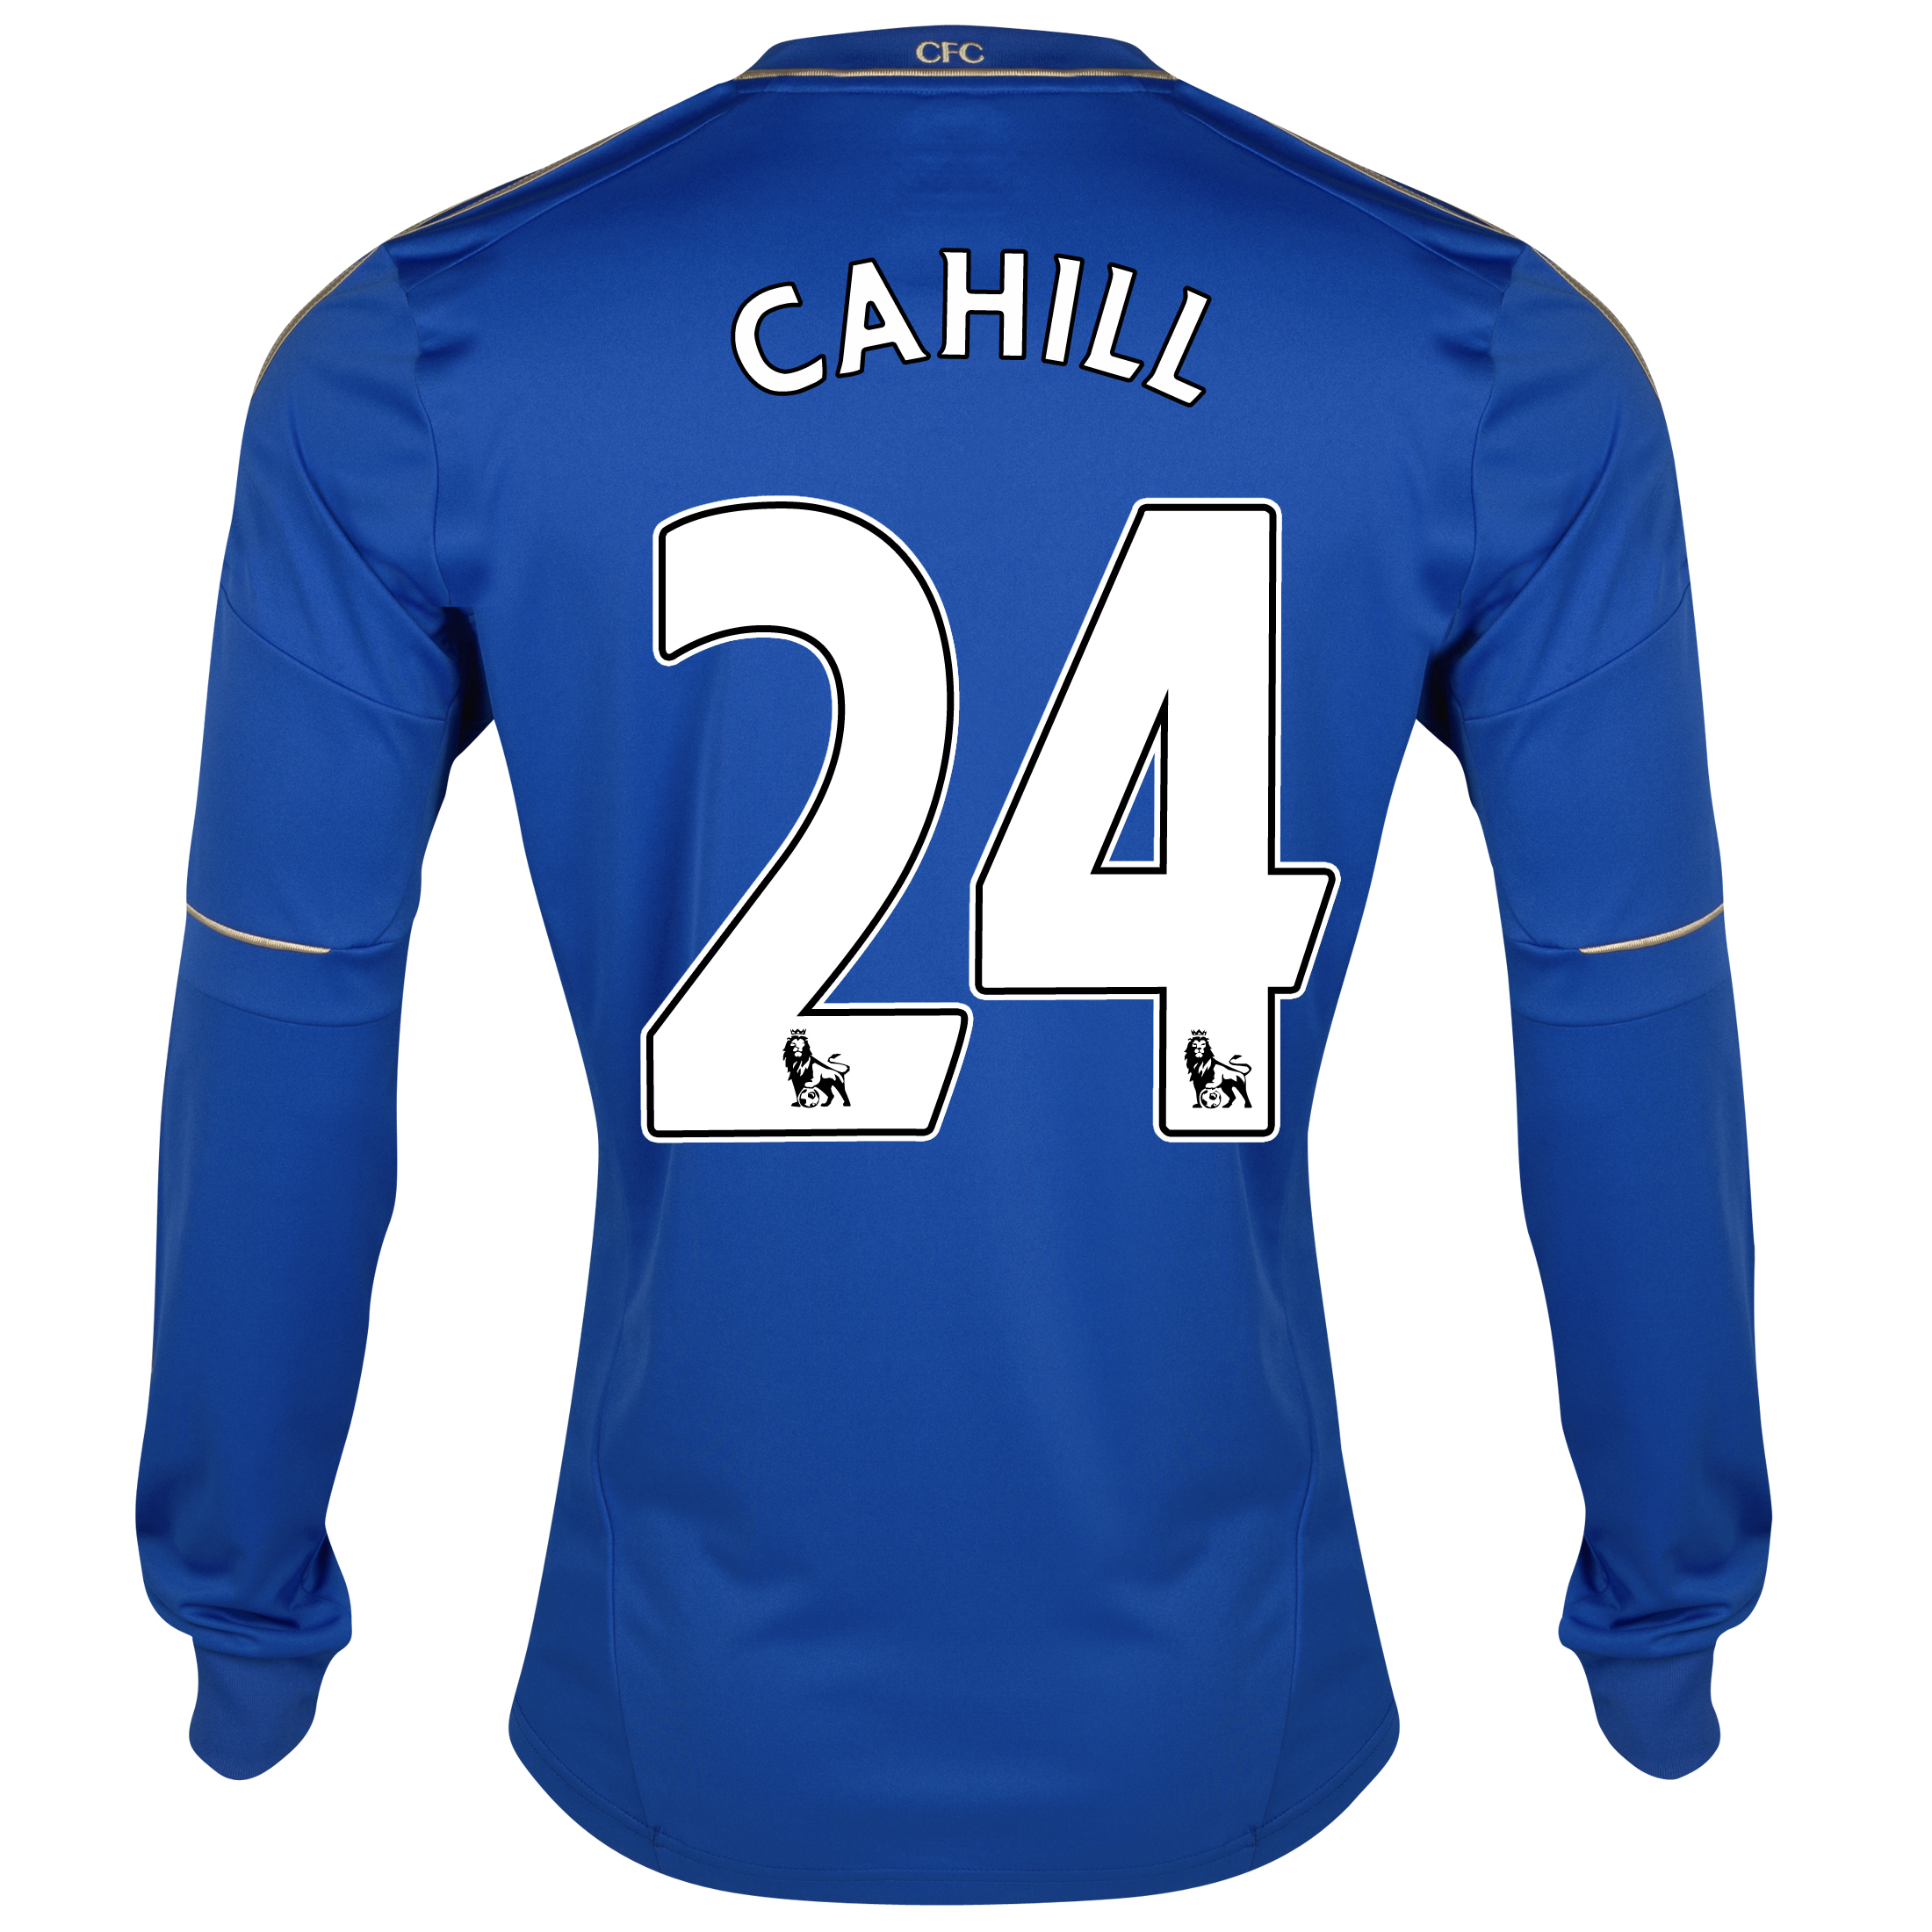 Chelsea Home Shirt 2012/13 - Long Sleeved - Youths with Cahill 24 printing